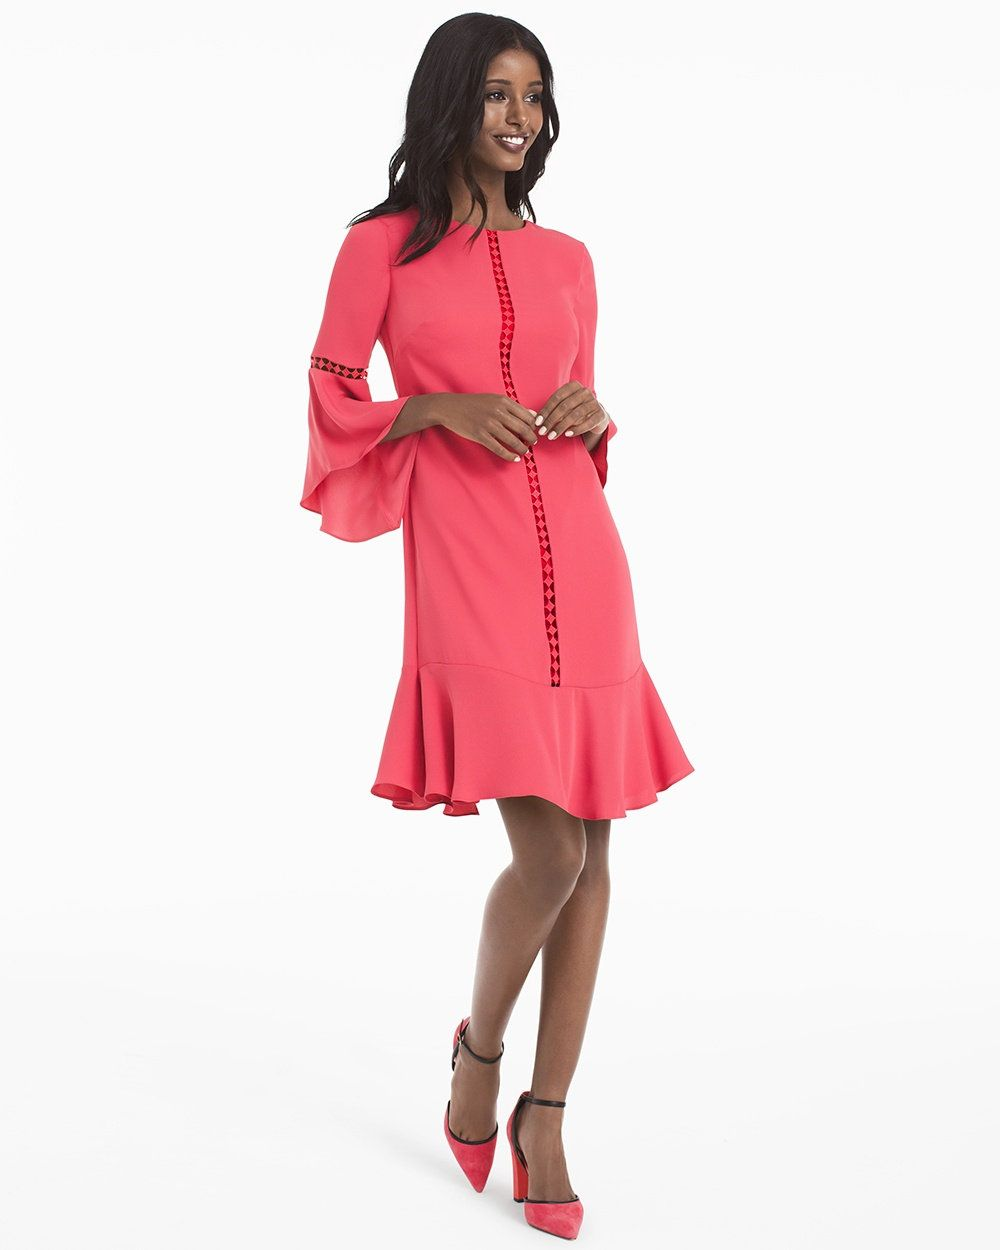 Bellsleeve shift dress clothes i want pinterest clothes and